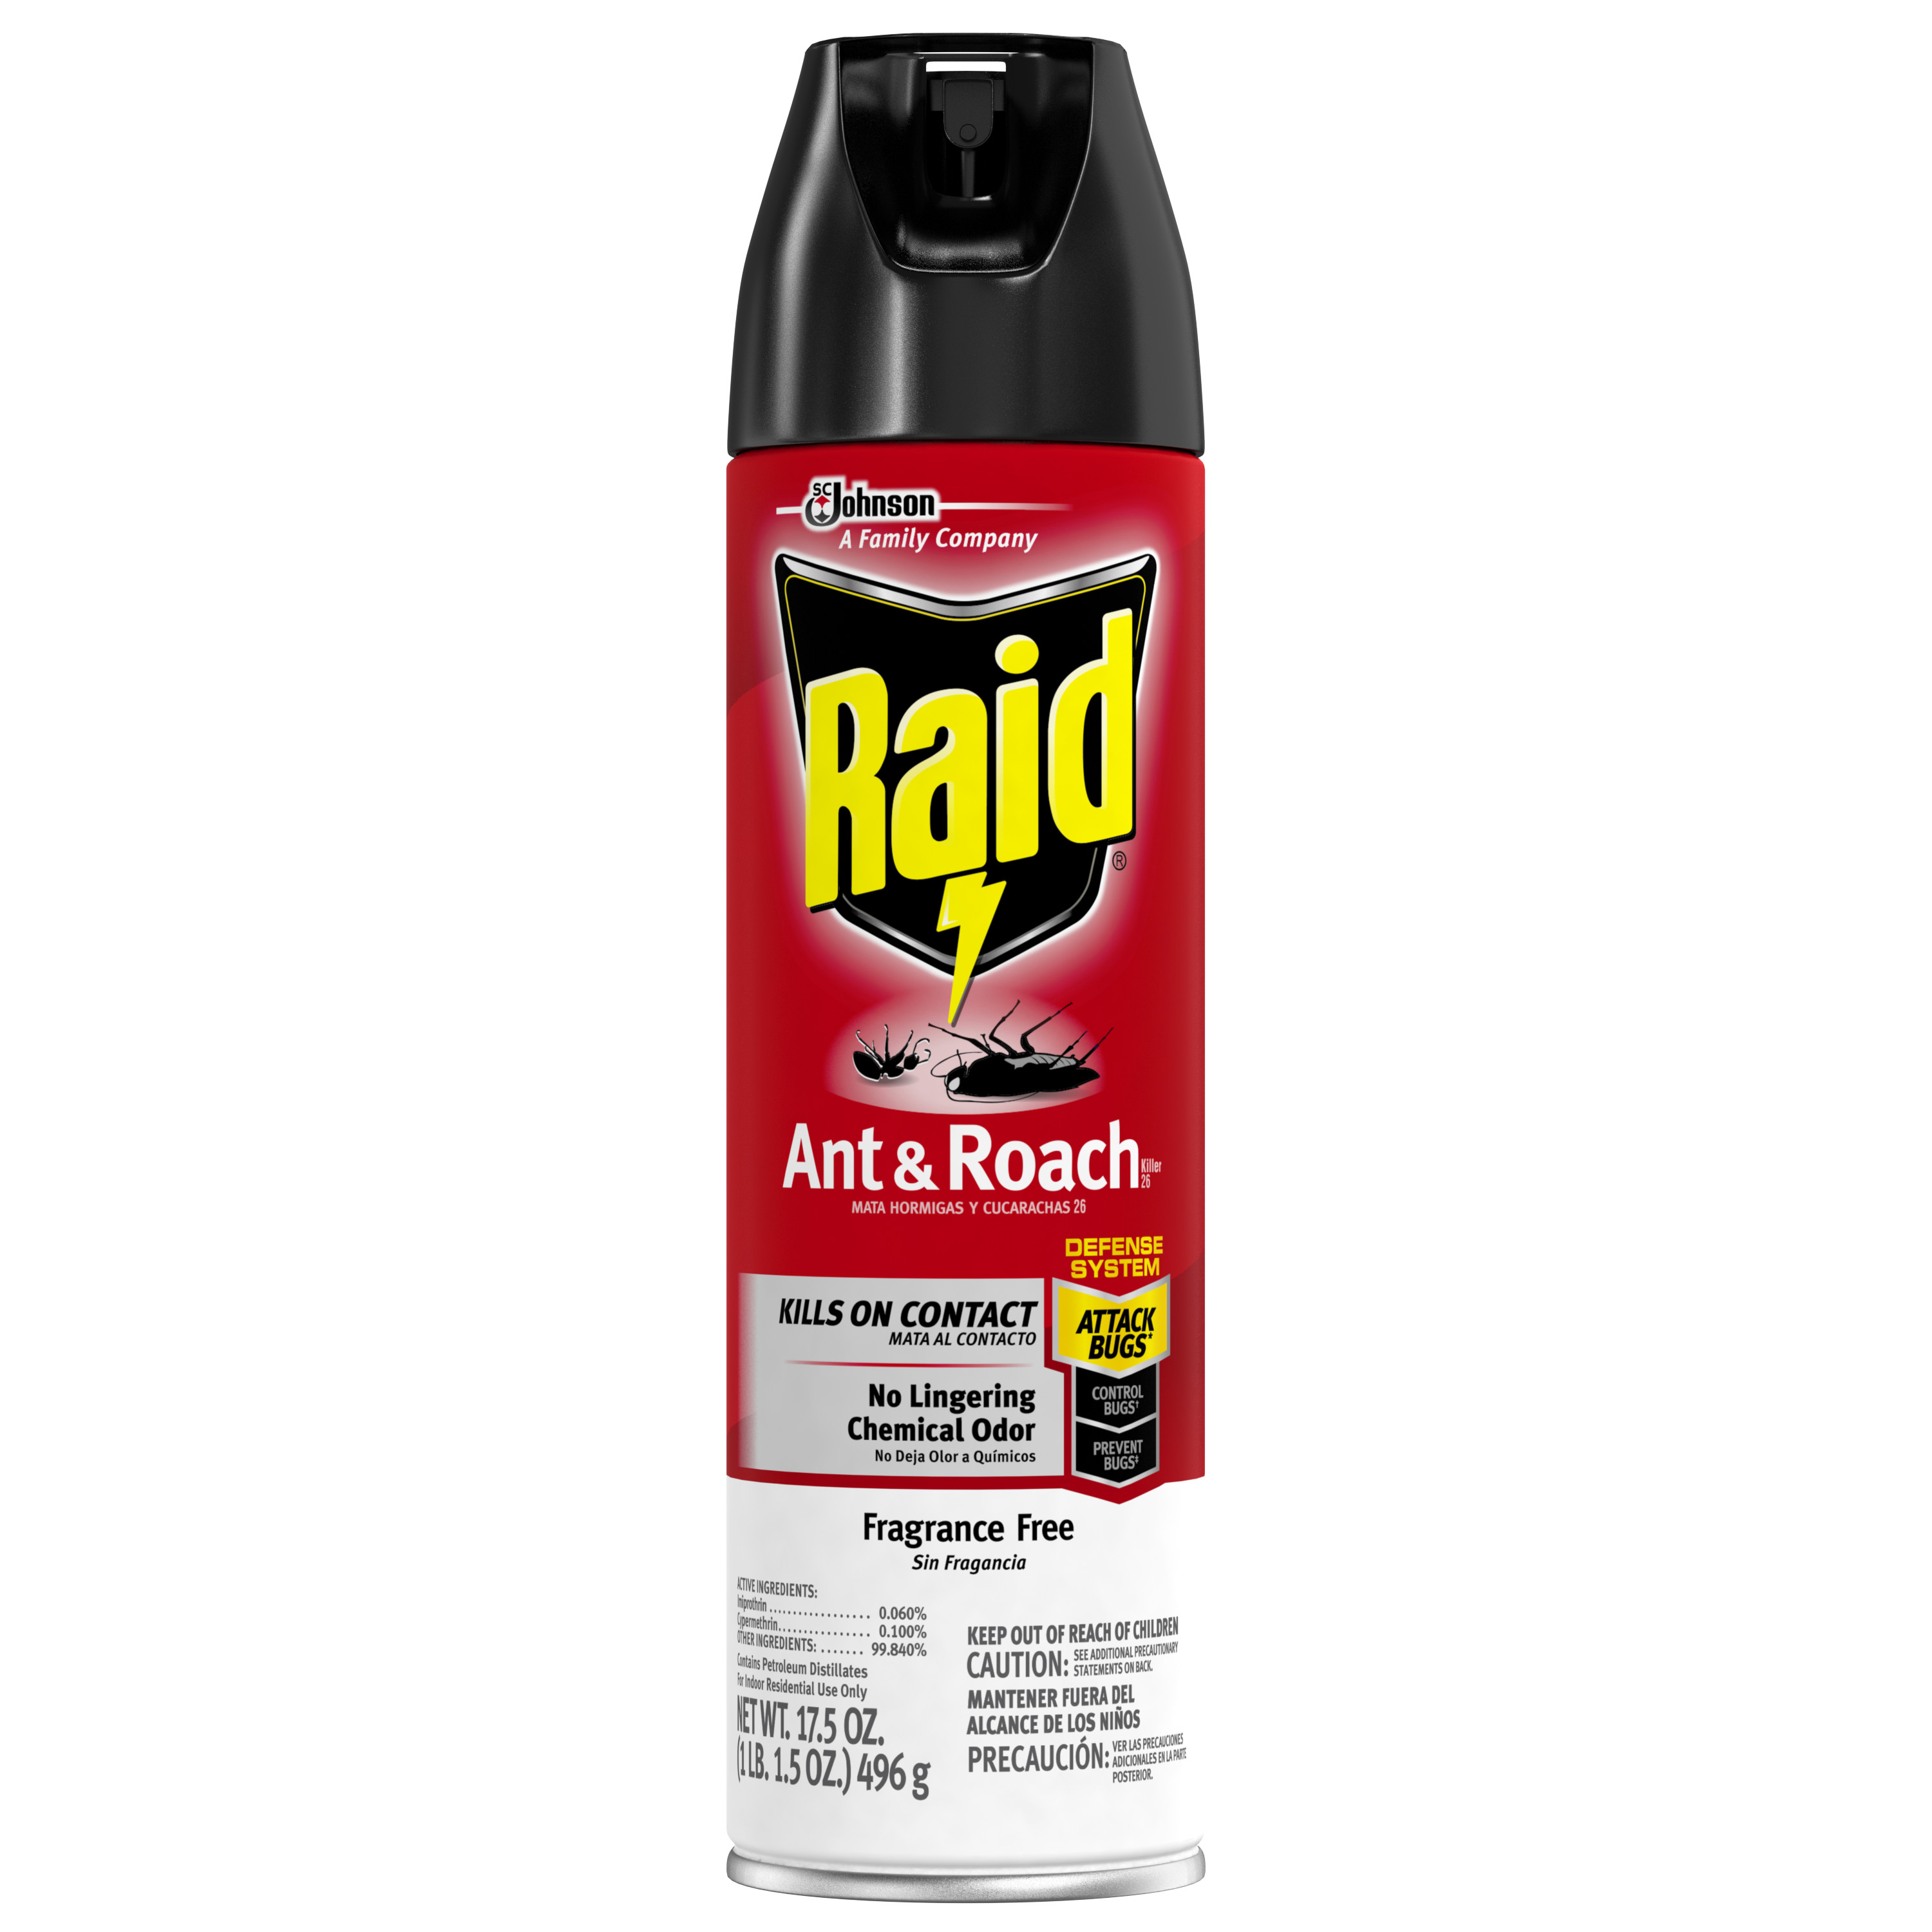 Raid Ant & Roach Killer Fragrance Free 17.5 Ounces